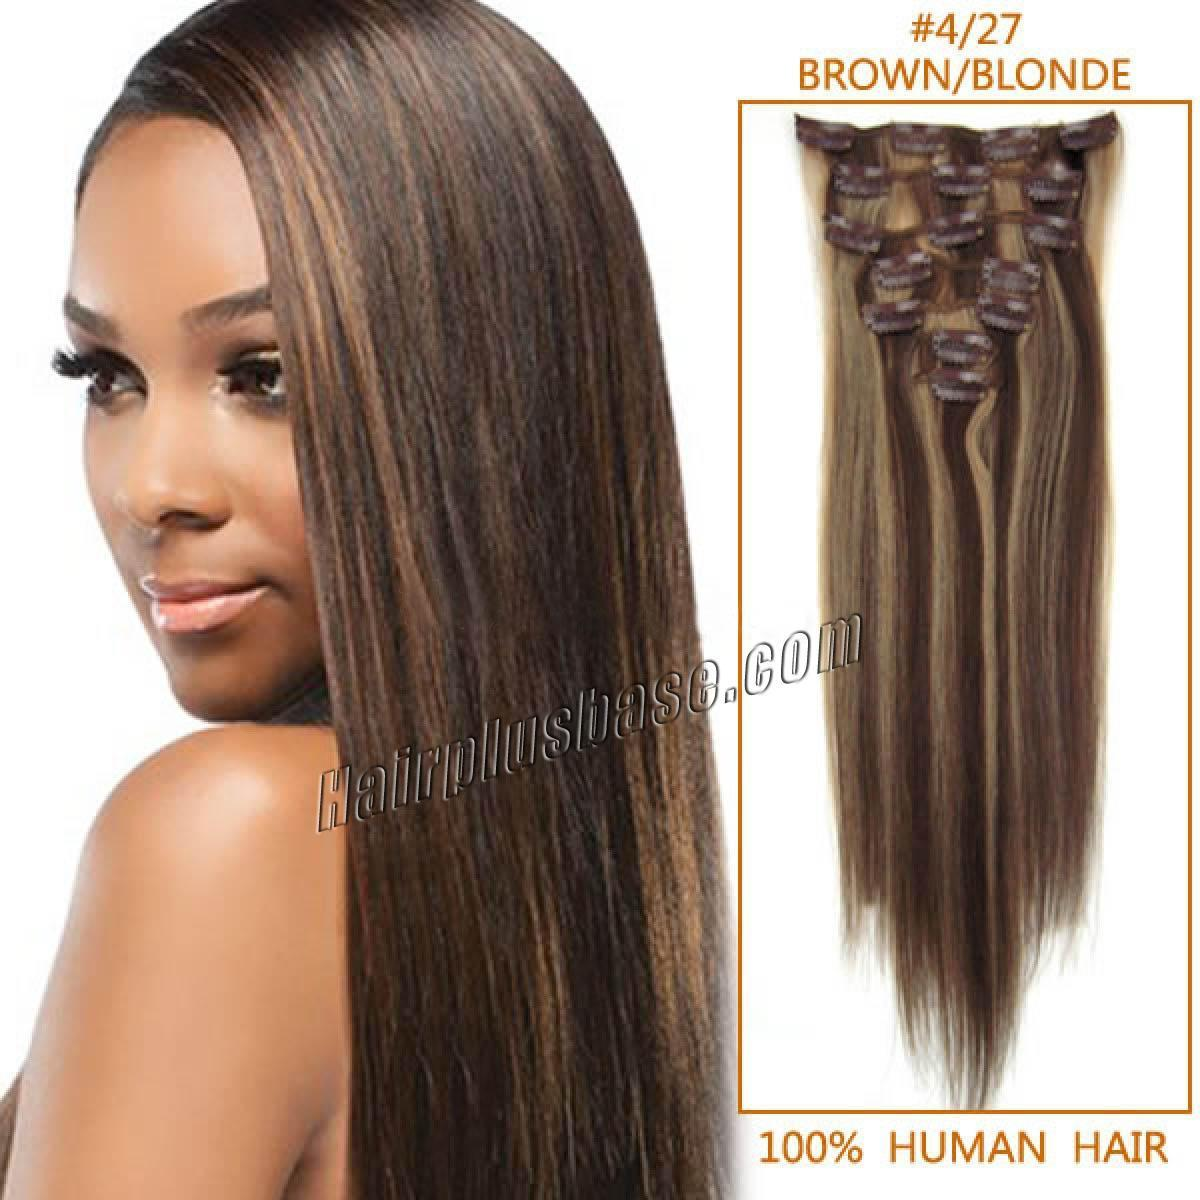 The Best 30 Inch 4 27 Brown Blonde Clip In Remy Human Hair Pictures